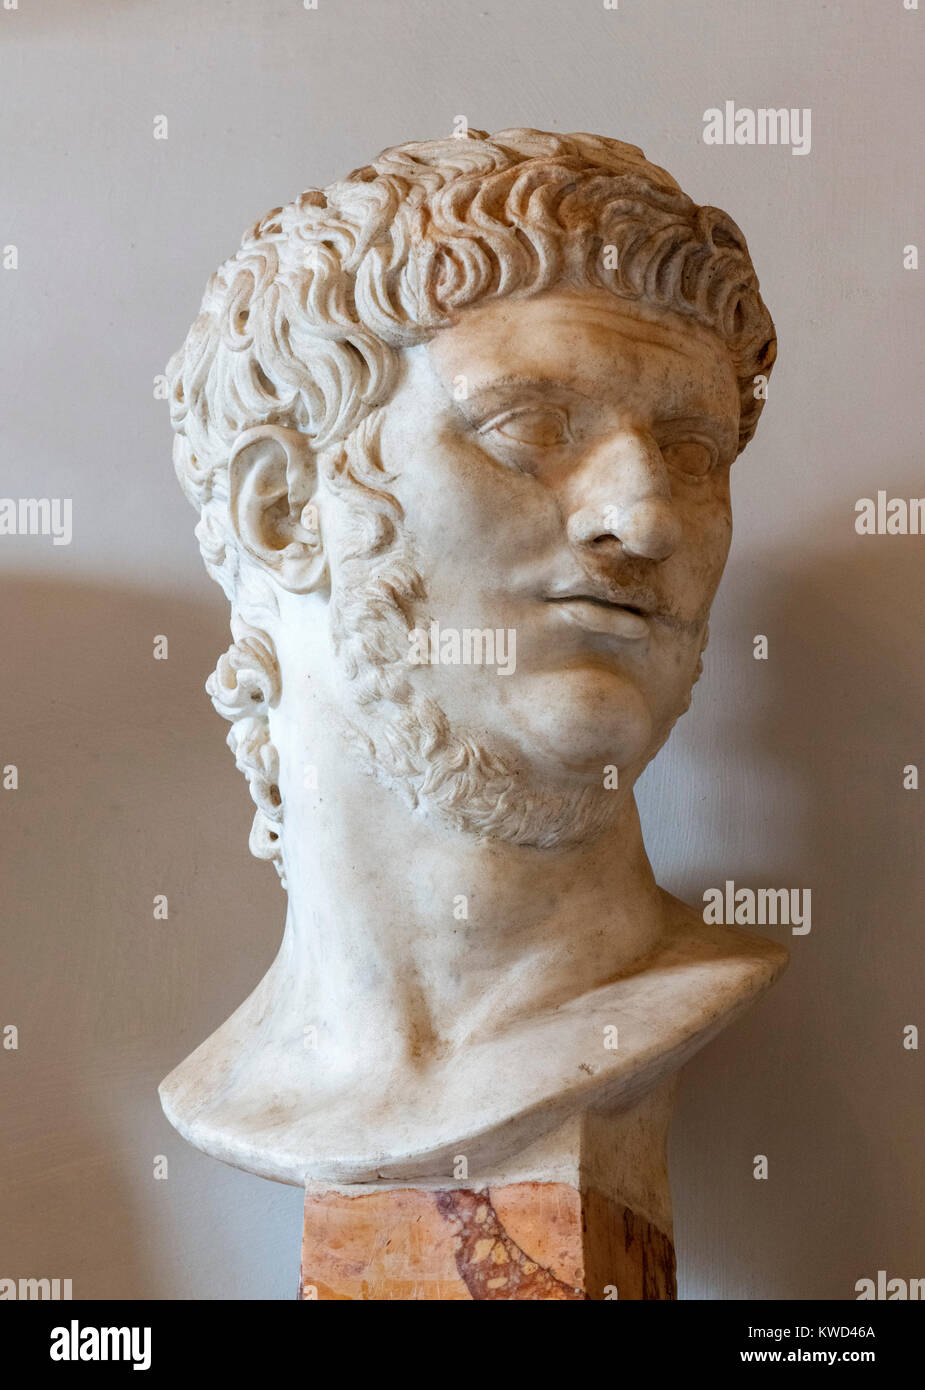 Bust of the Emperor Nero, Palazzo Nuovo, Capitoline Museums, Rome, Italy - Stock Image